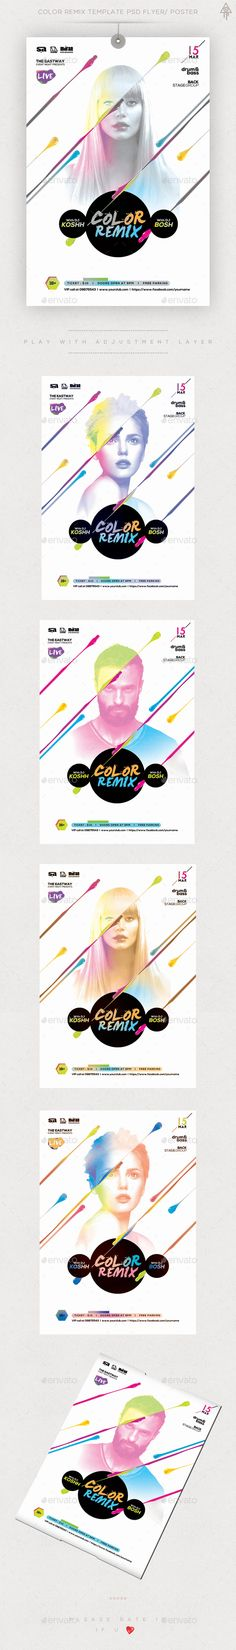 Color Remix Guest Dj Flyer Template PSD Poster/ Flyer